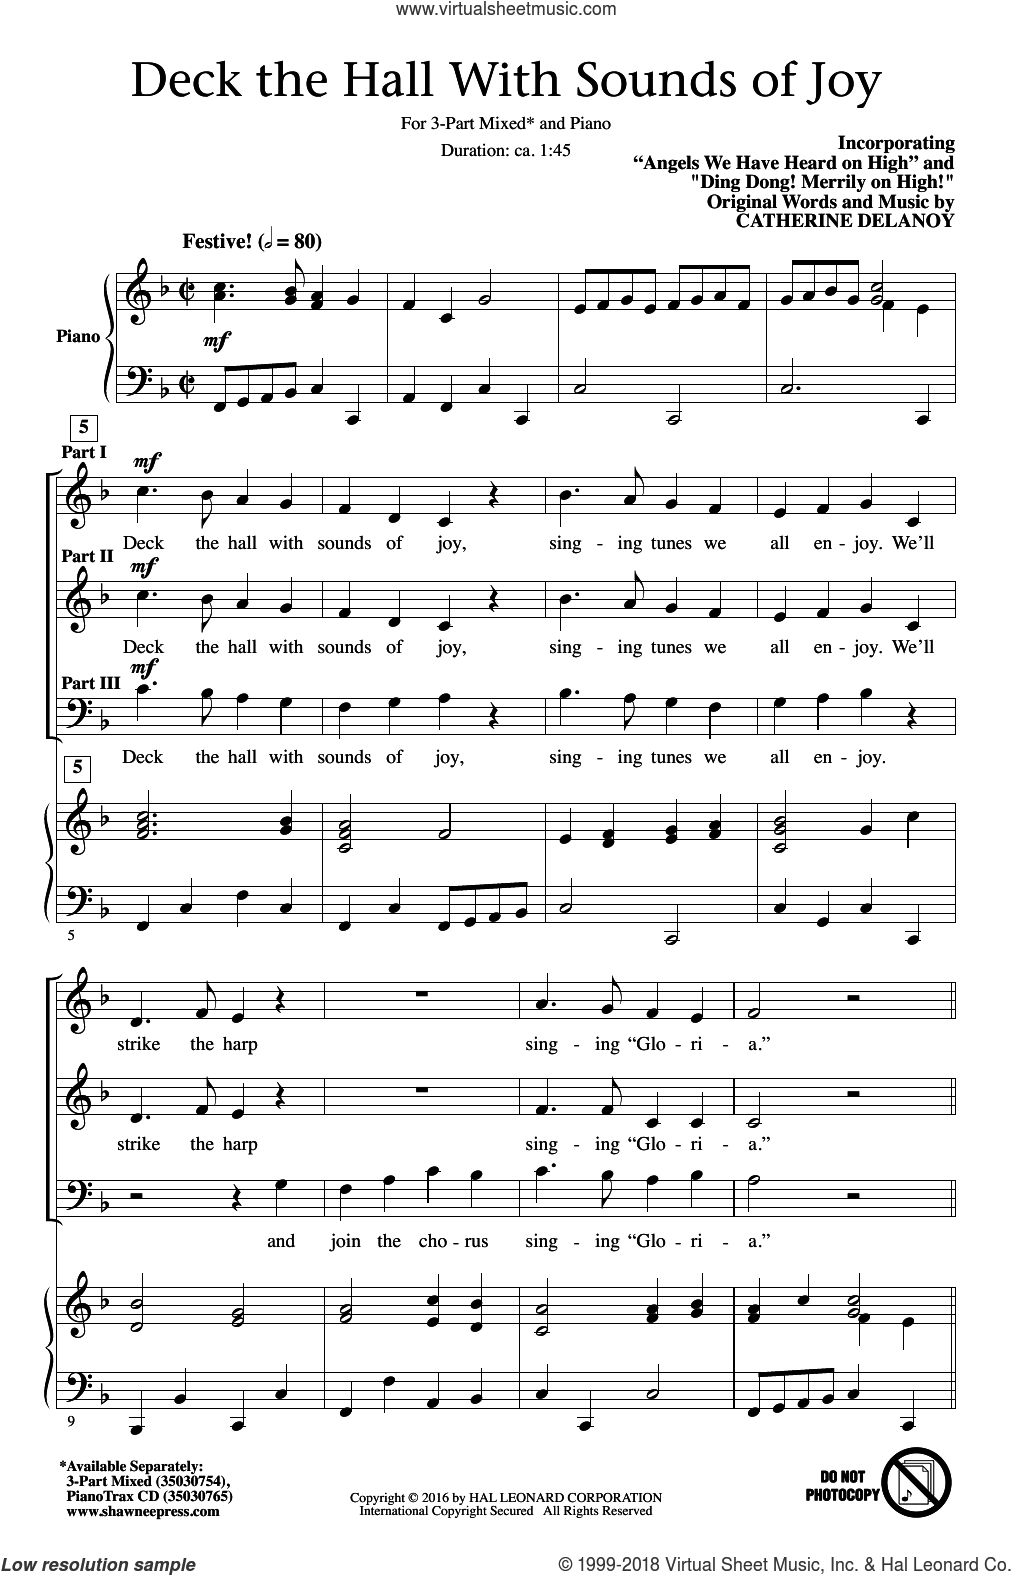 Deck The Hall With Sounds Of Joy sheet music for choir (3-Part Mixed) by Catherine Delanoy, intermediate. Score Image Preview.